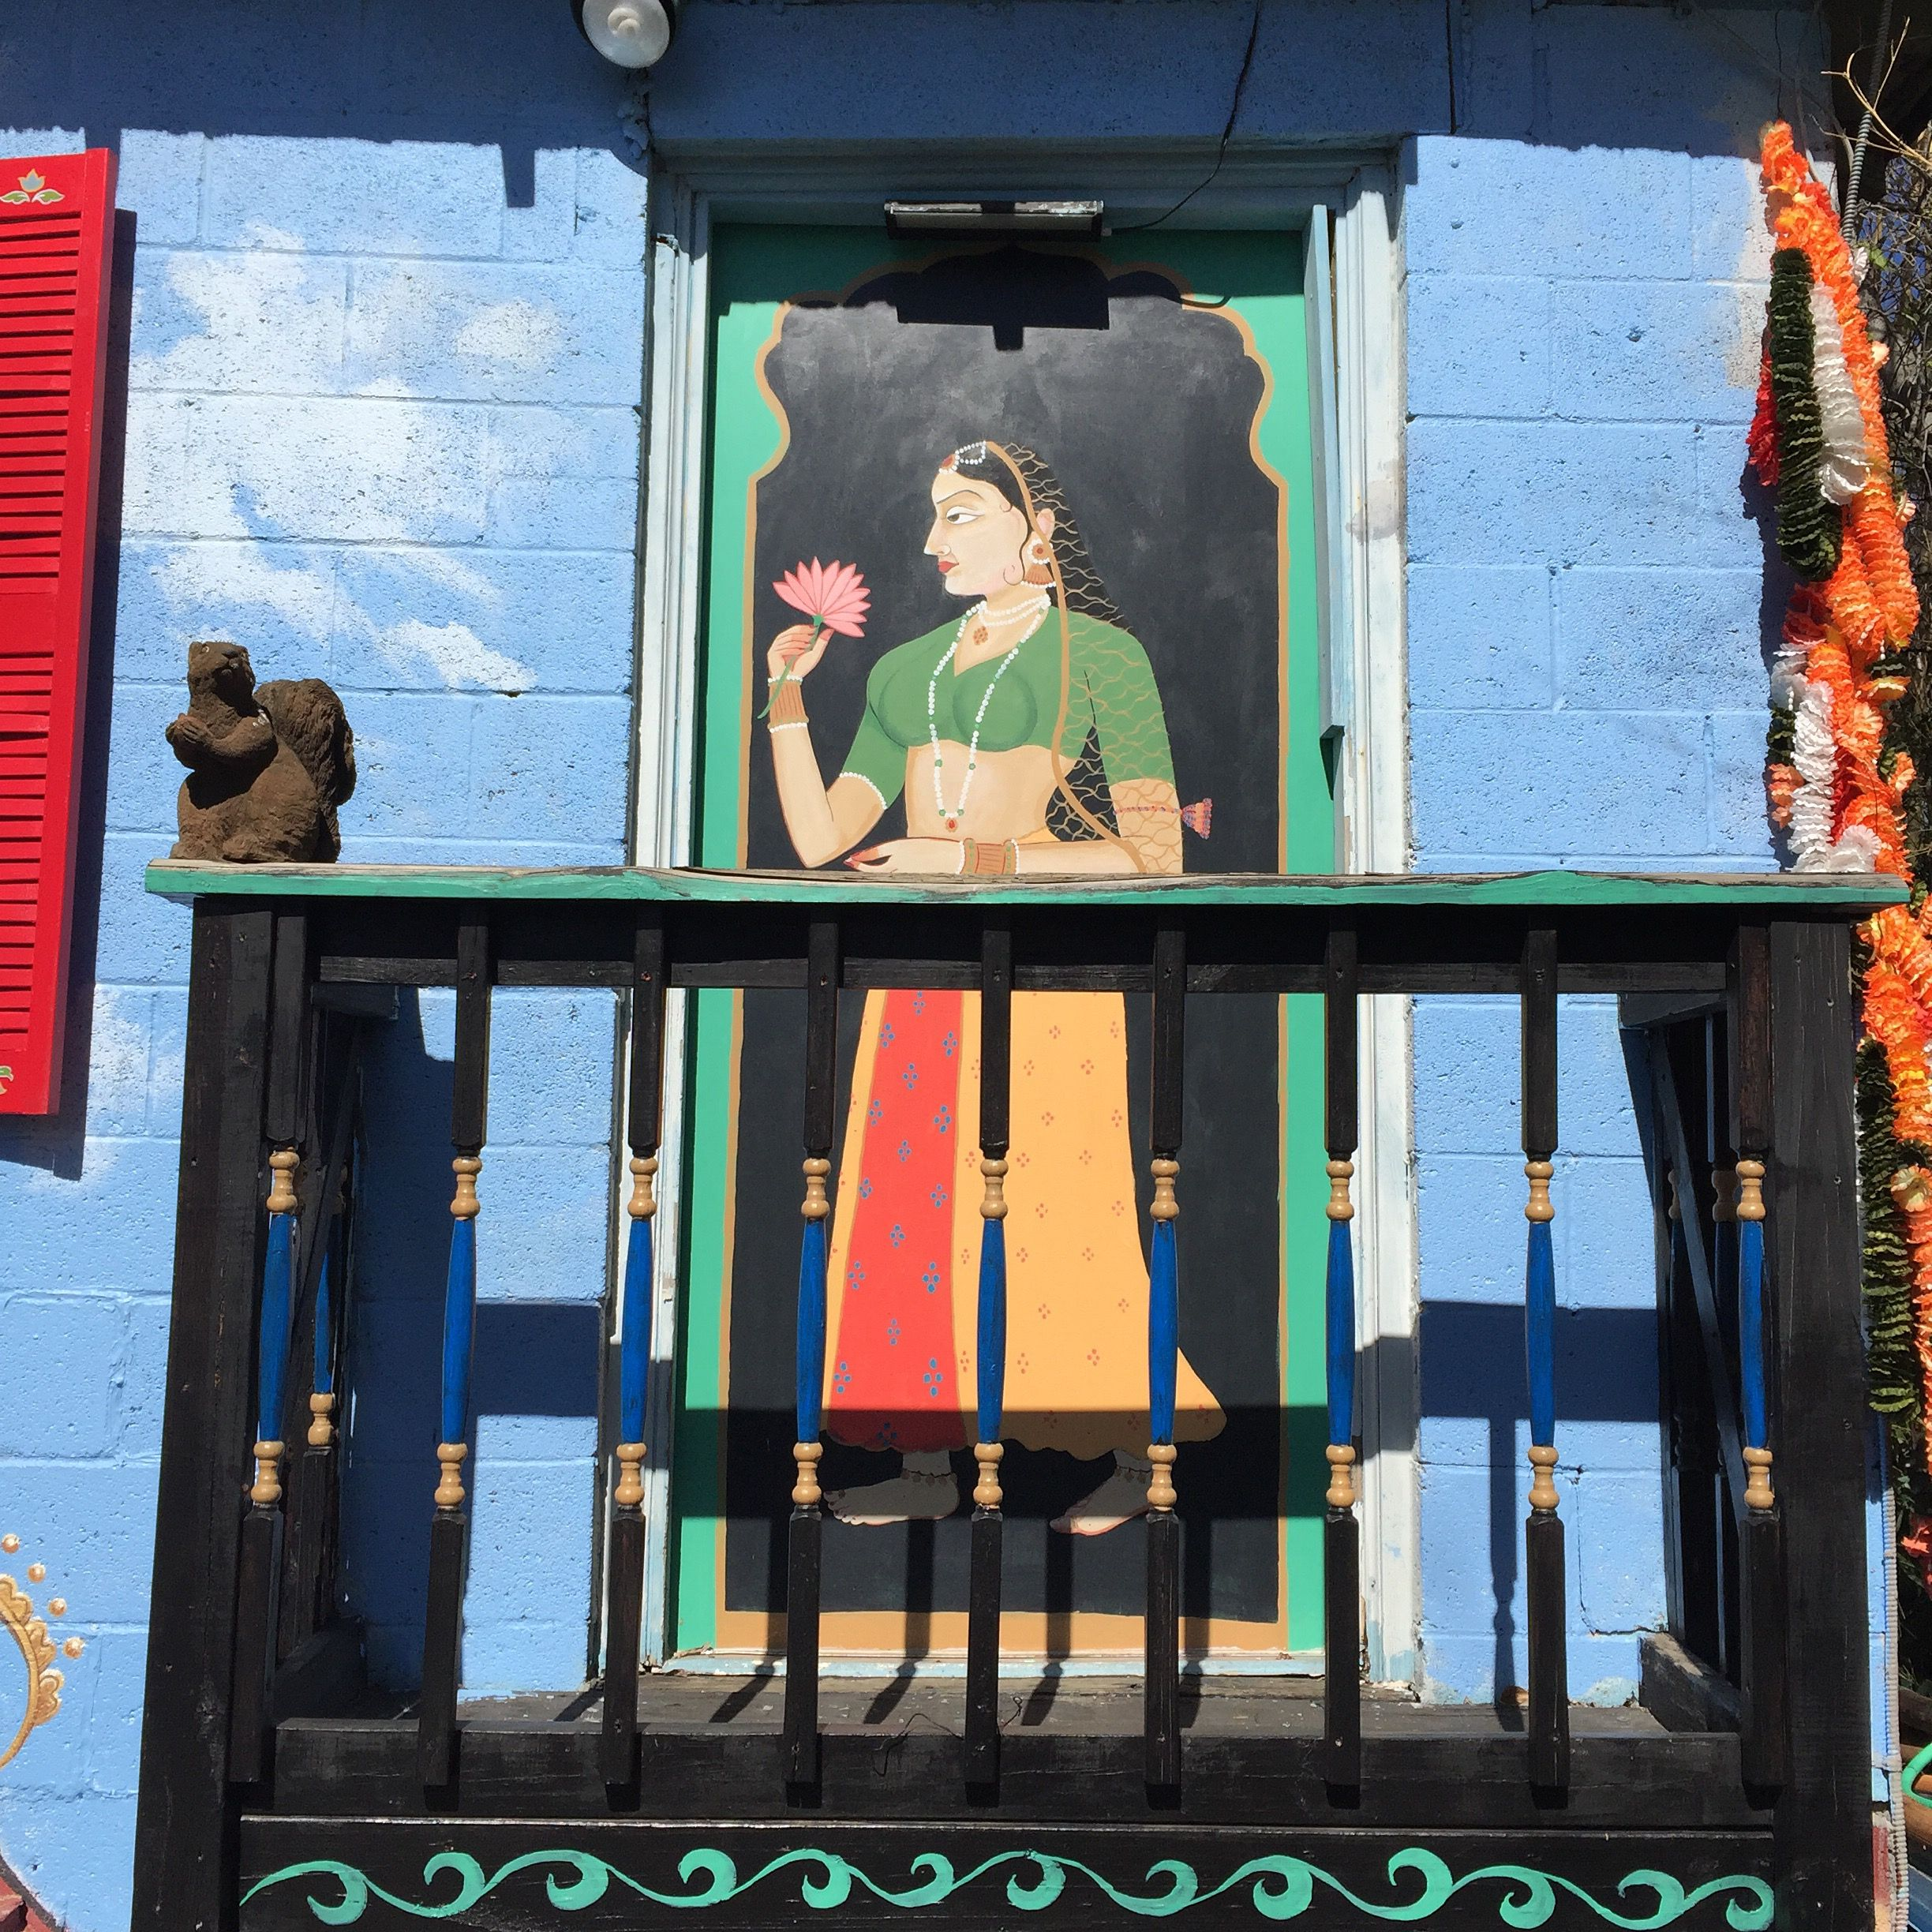 A Poetic Mural Of A Woman Painted On A Balcony Door For A